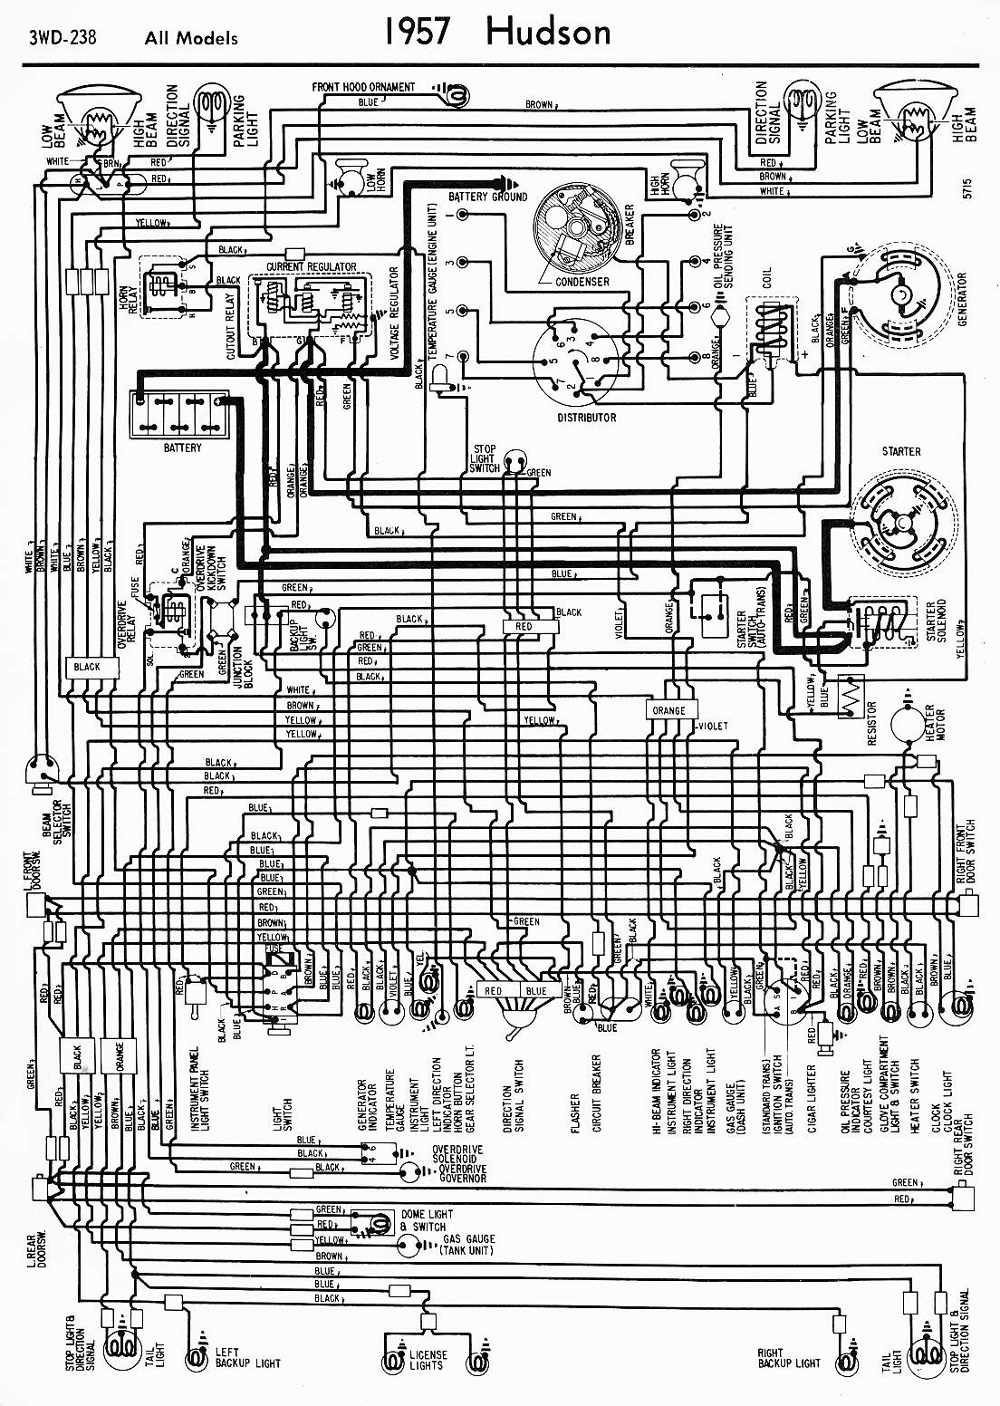 Hornet Wiring Diagram All Kind Of Wiring Diagrams \u2022 Water Heater Wiring Schematic Hot Water Heater Wiring Diagram Keystone Hornet